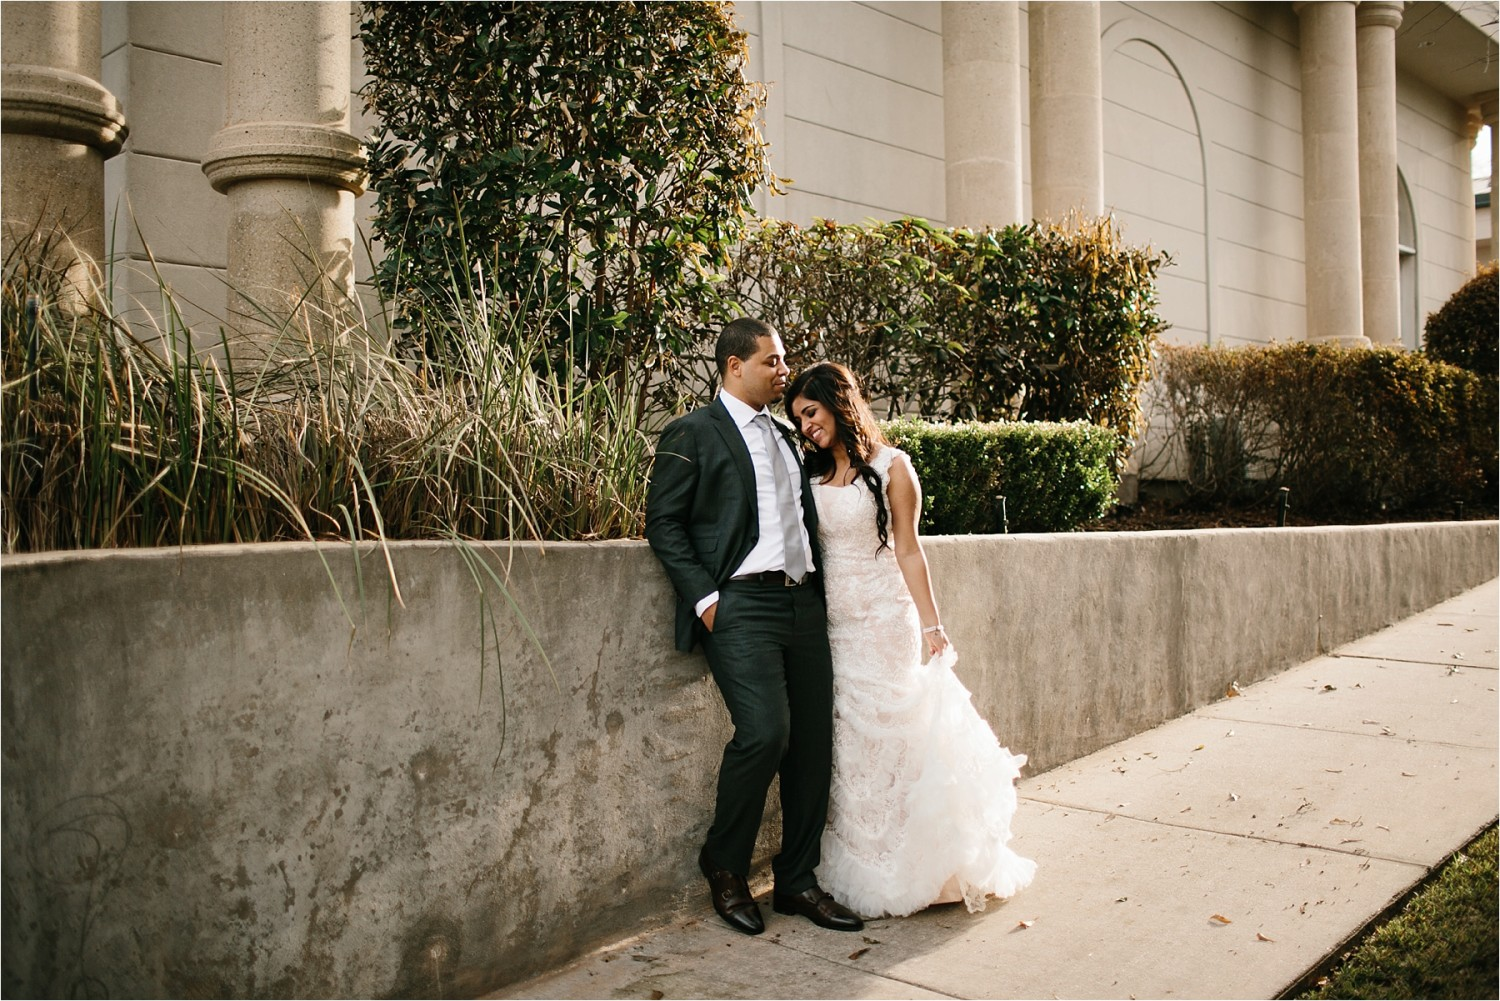 Jeanpaul + Ann __ a colorful wedding at Ashton Gardens in Houston TX by North Texas Wedding Photographer Rachel Meagan Photography _ 46